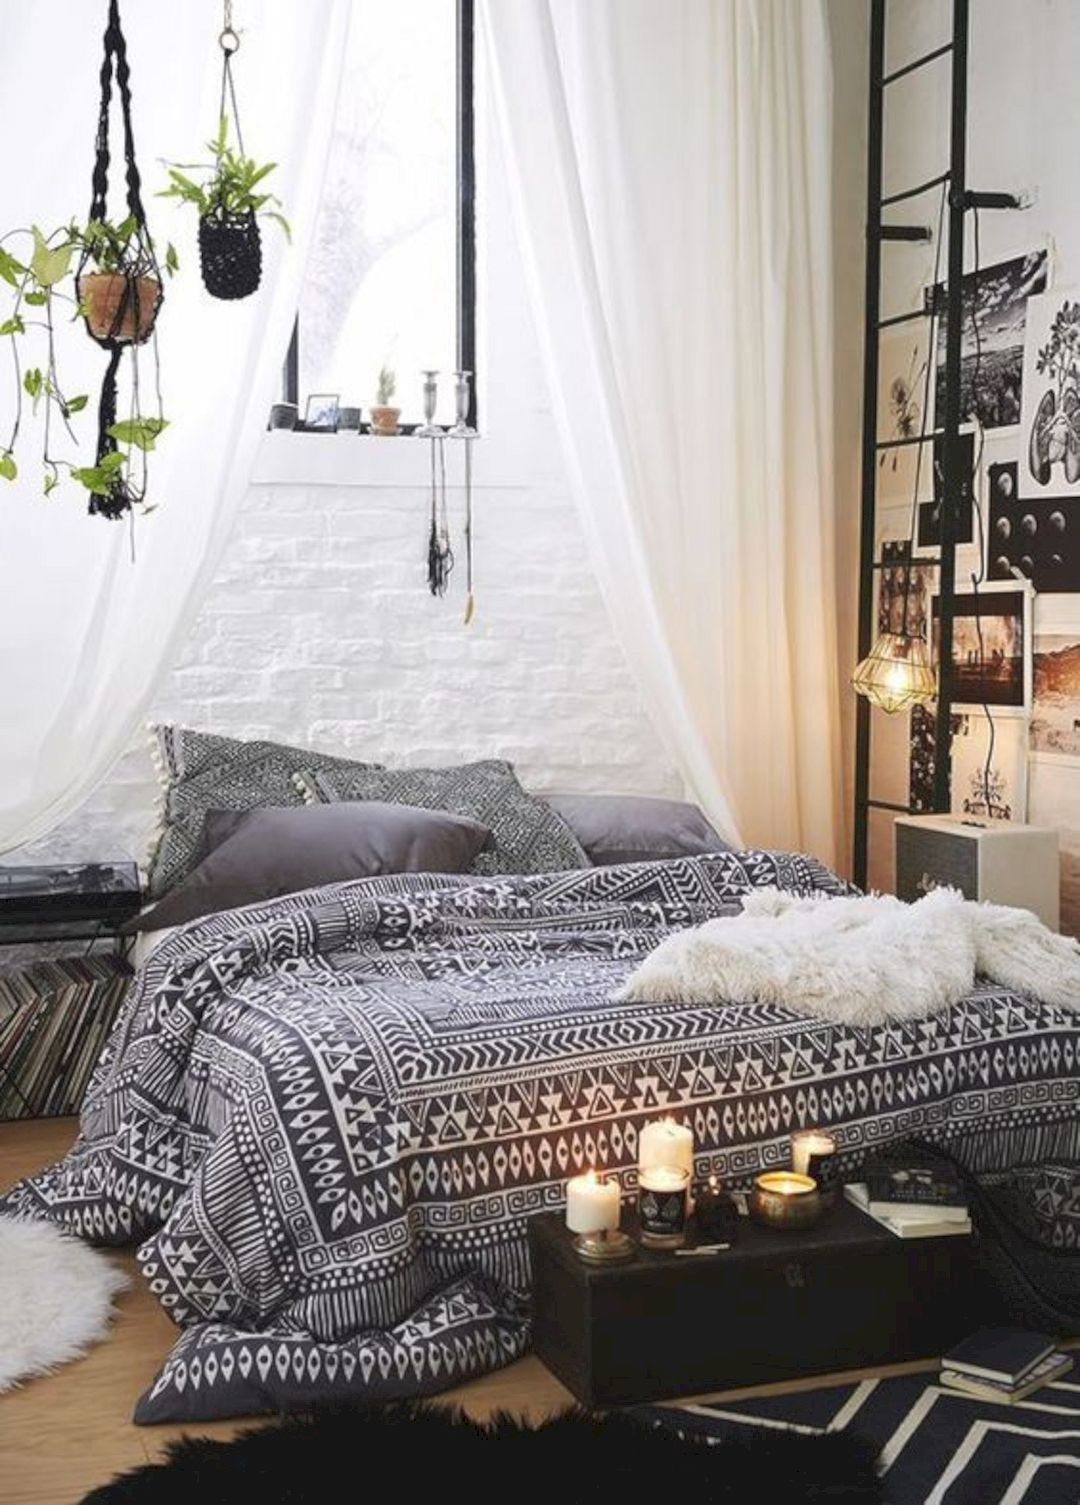 16 Hippie Bedroom Designs httpswwwdesignlisticlecomhippie 16 Hippie